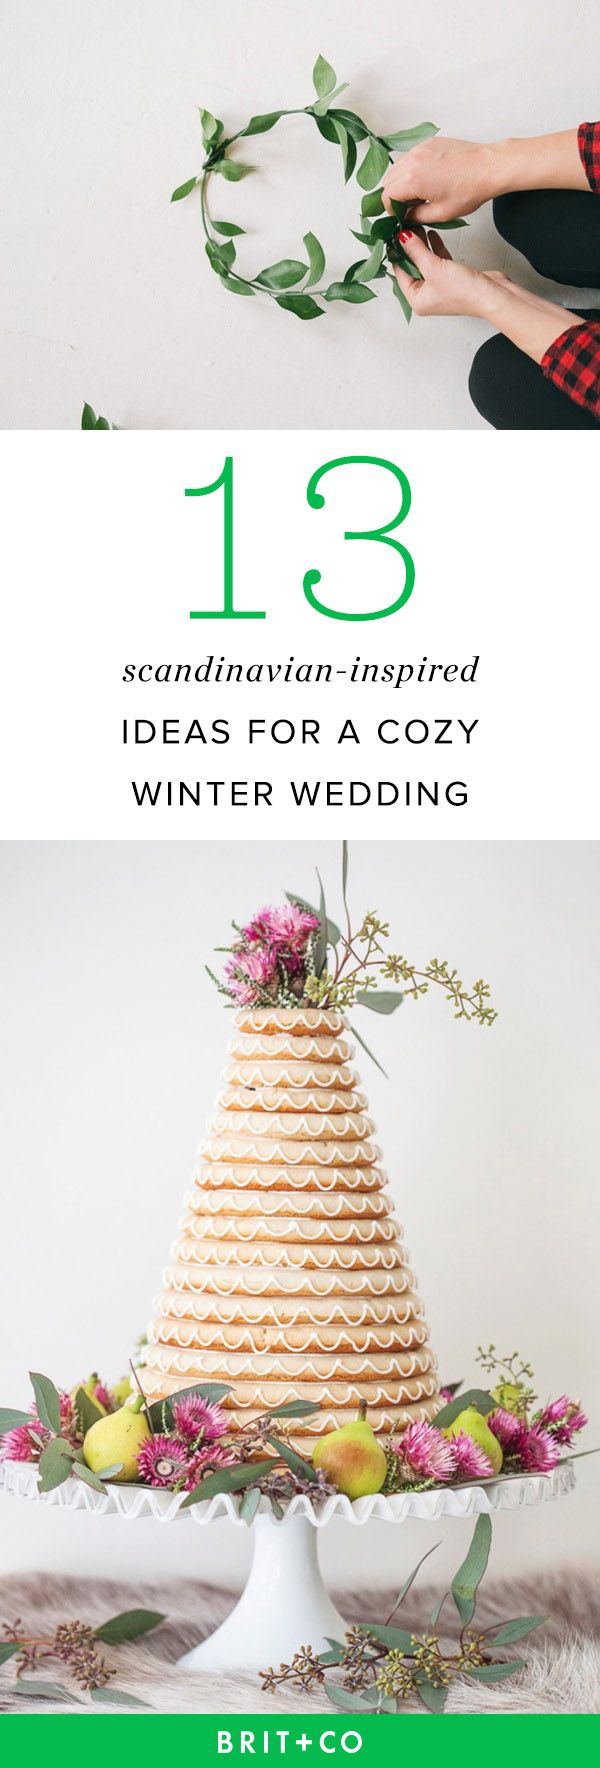 Get inspo for your winter wedding from these Scandinavian-inspired ideas.